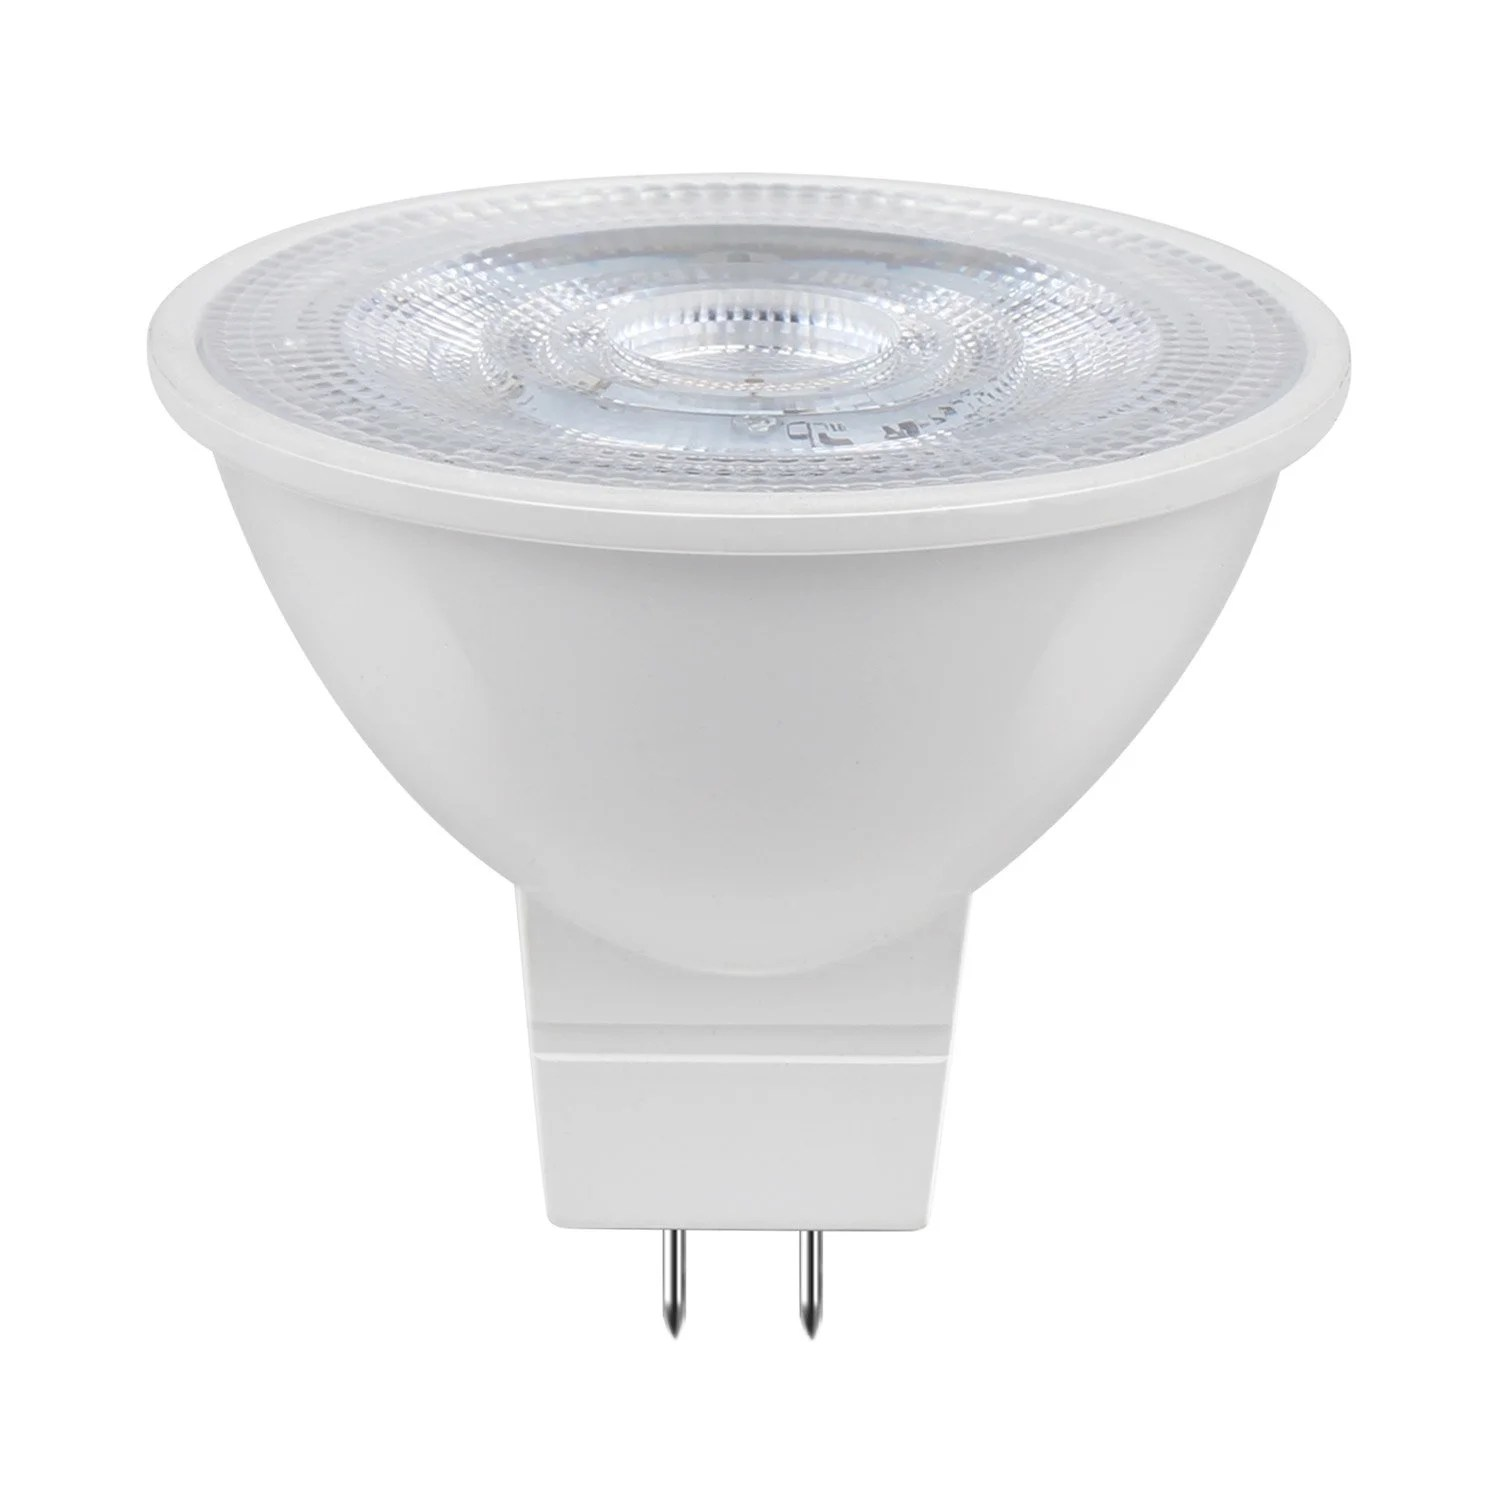 Ampoule Gx53 Led Leroy Merlin Ampoule Gu5 3 Gallery Of Ampoule Led Mr Gu W V White Ge Bx With